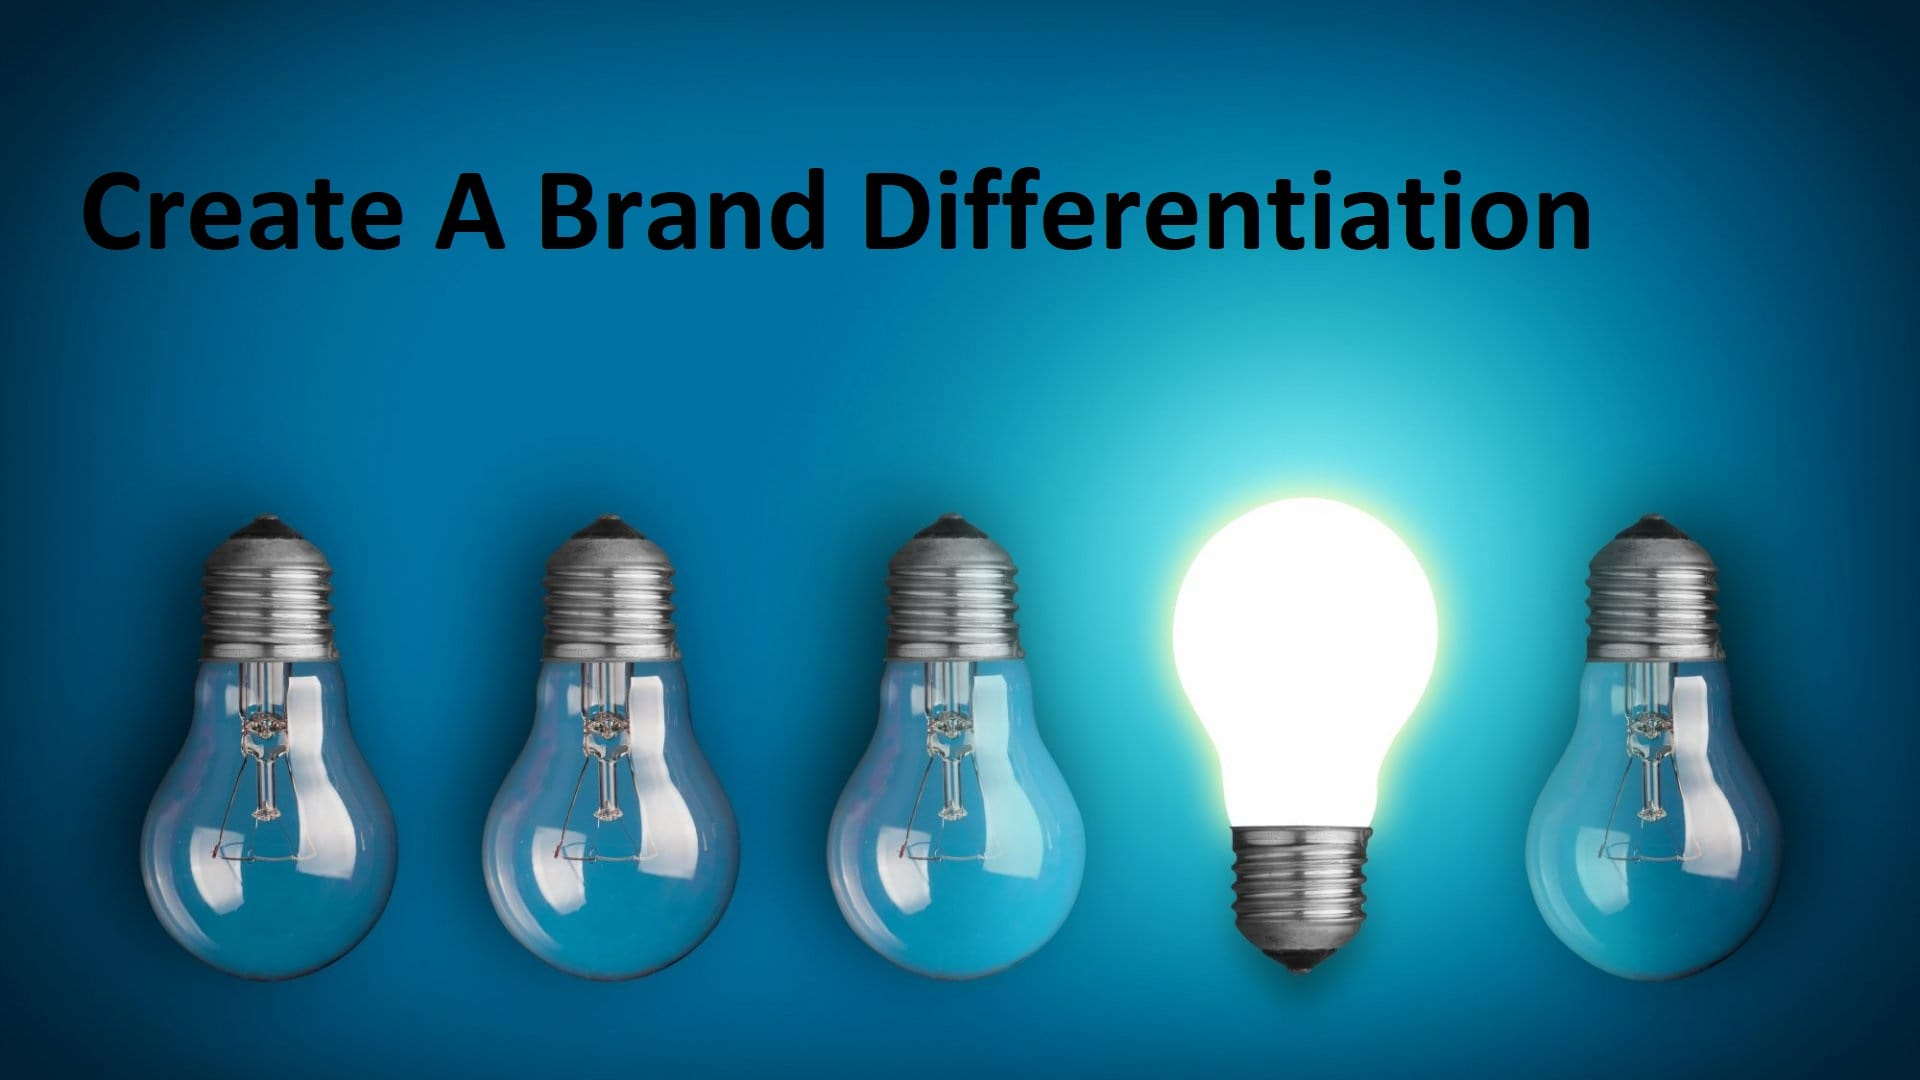 Create A Brand Differentiation